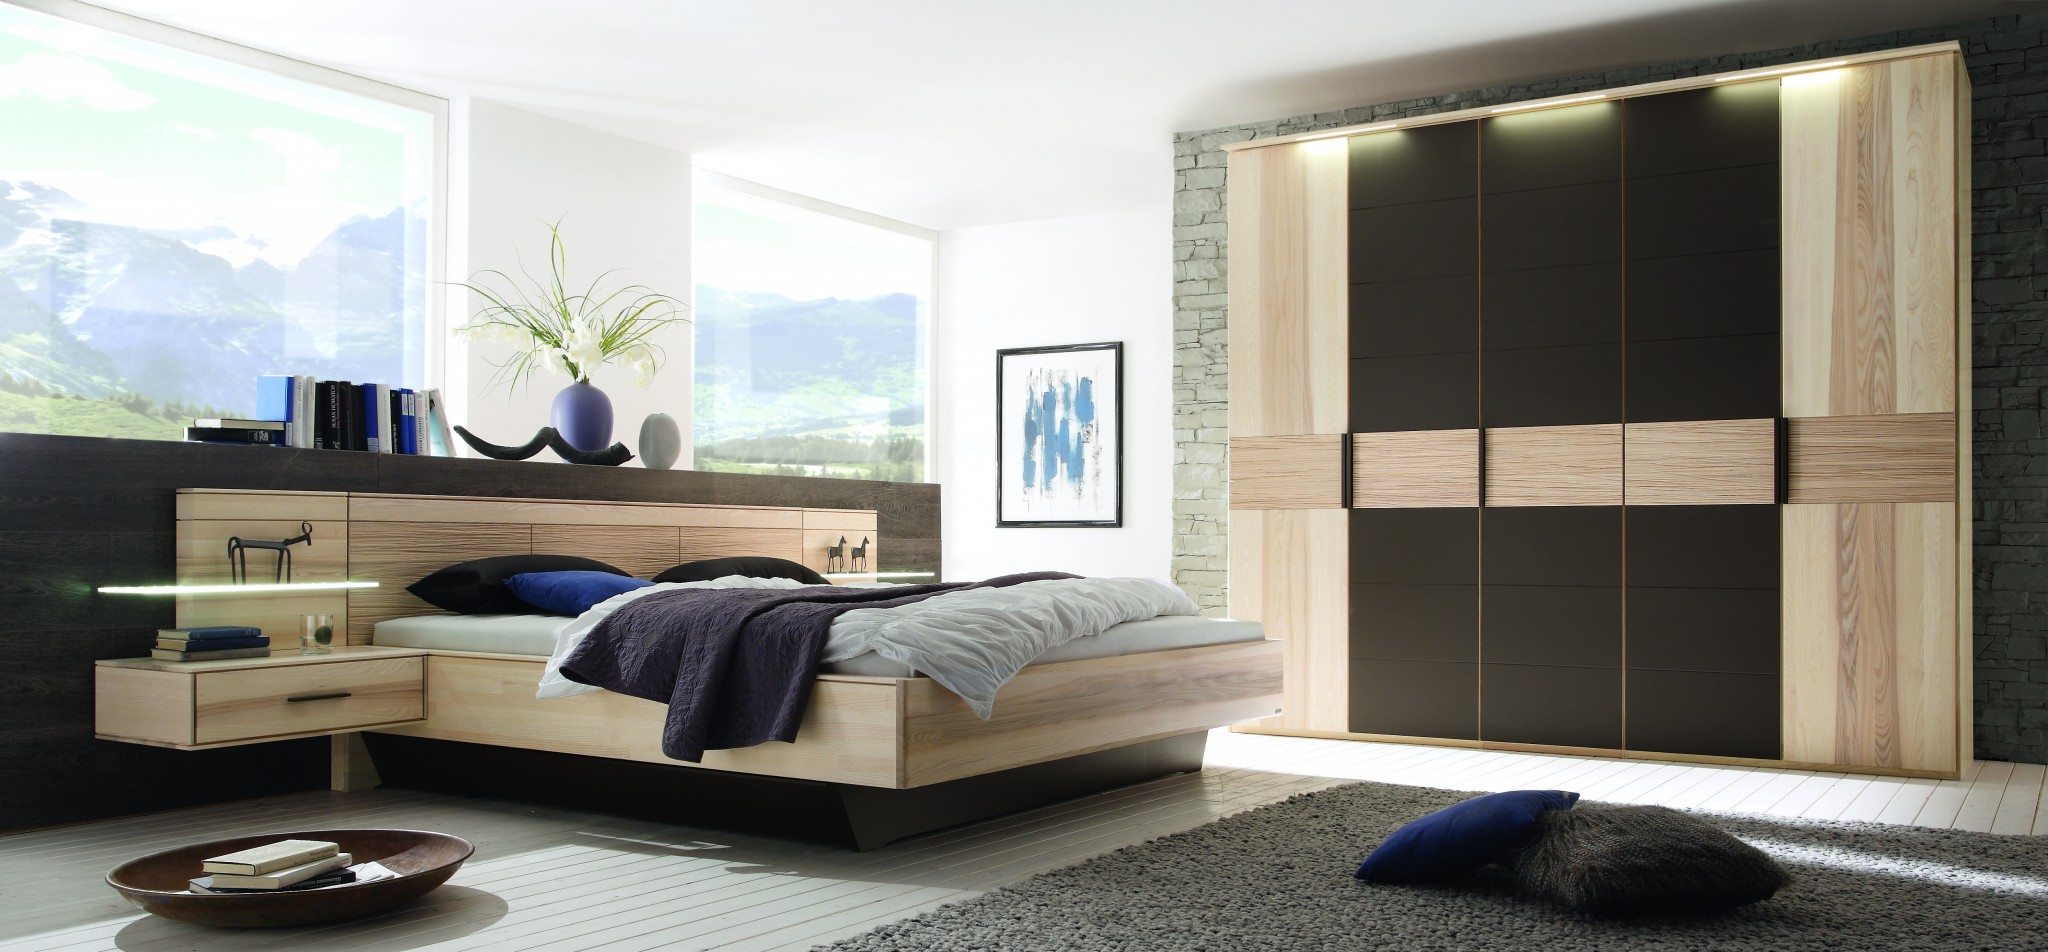 schlafzimmer mira in strukturesche massiv m bel polt m belhaus. Black Bedroom Furniture Sets. Home Design Ideas